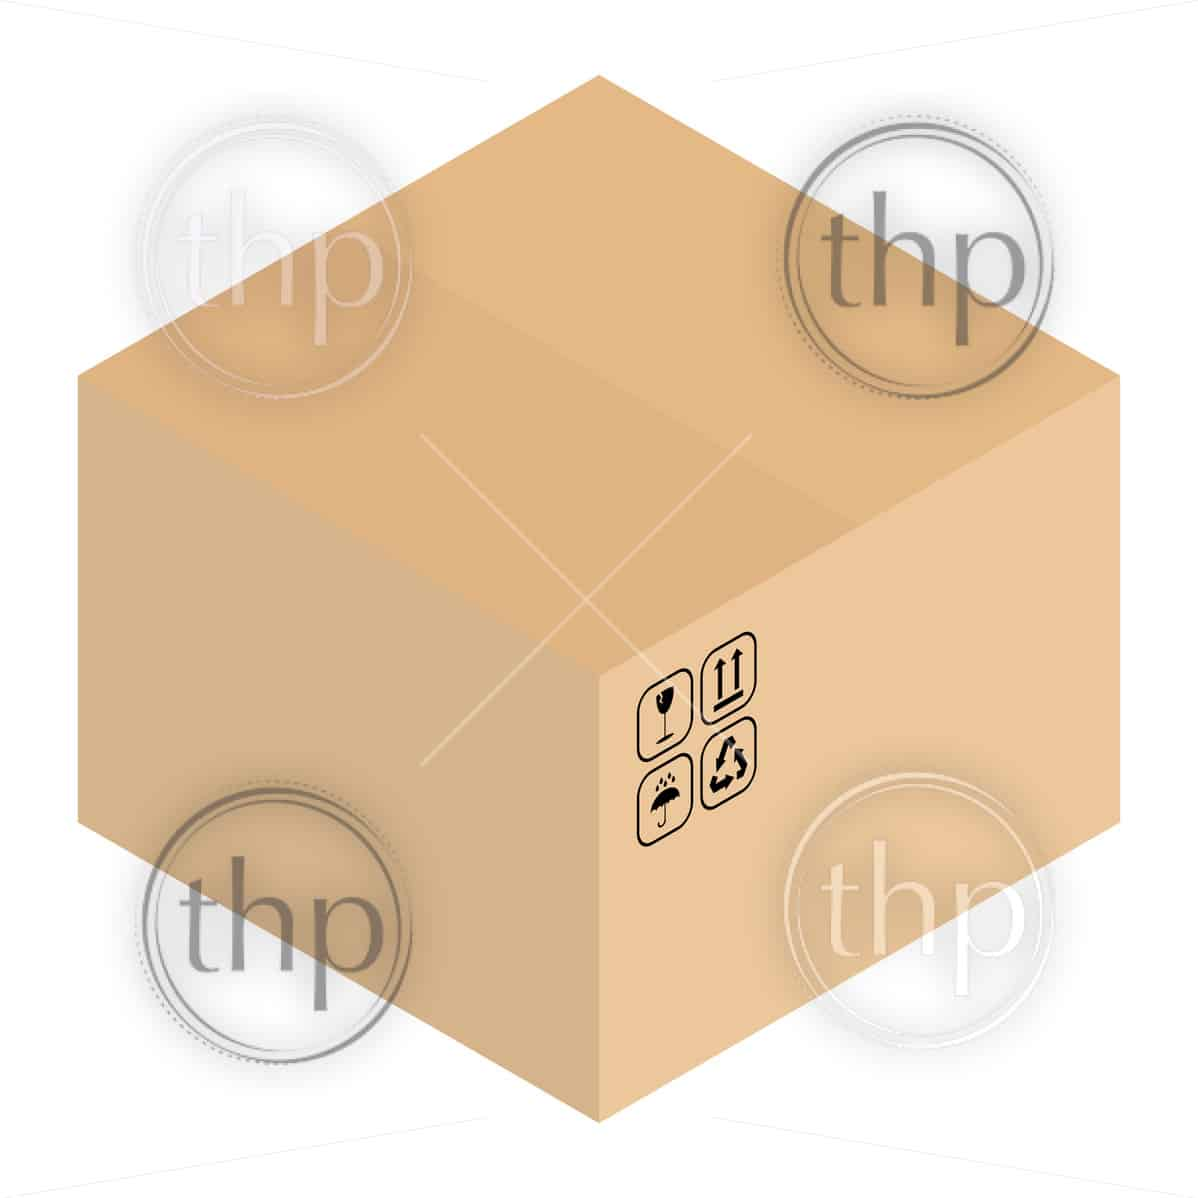 Cardboard Packing Box Vector